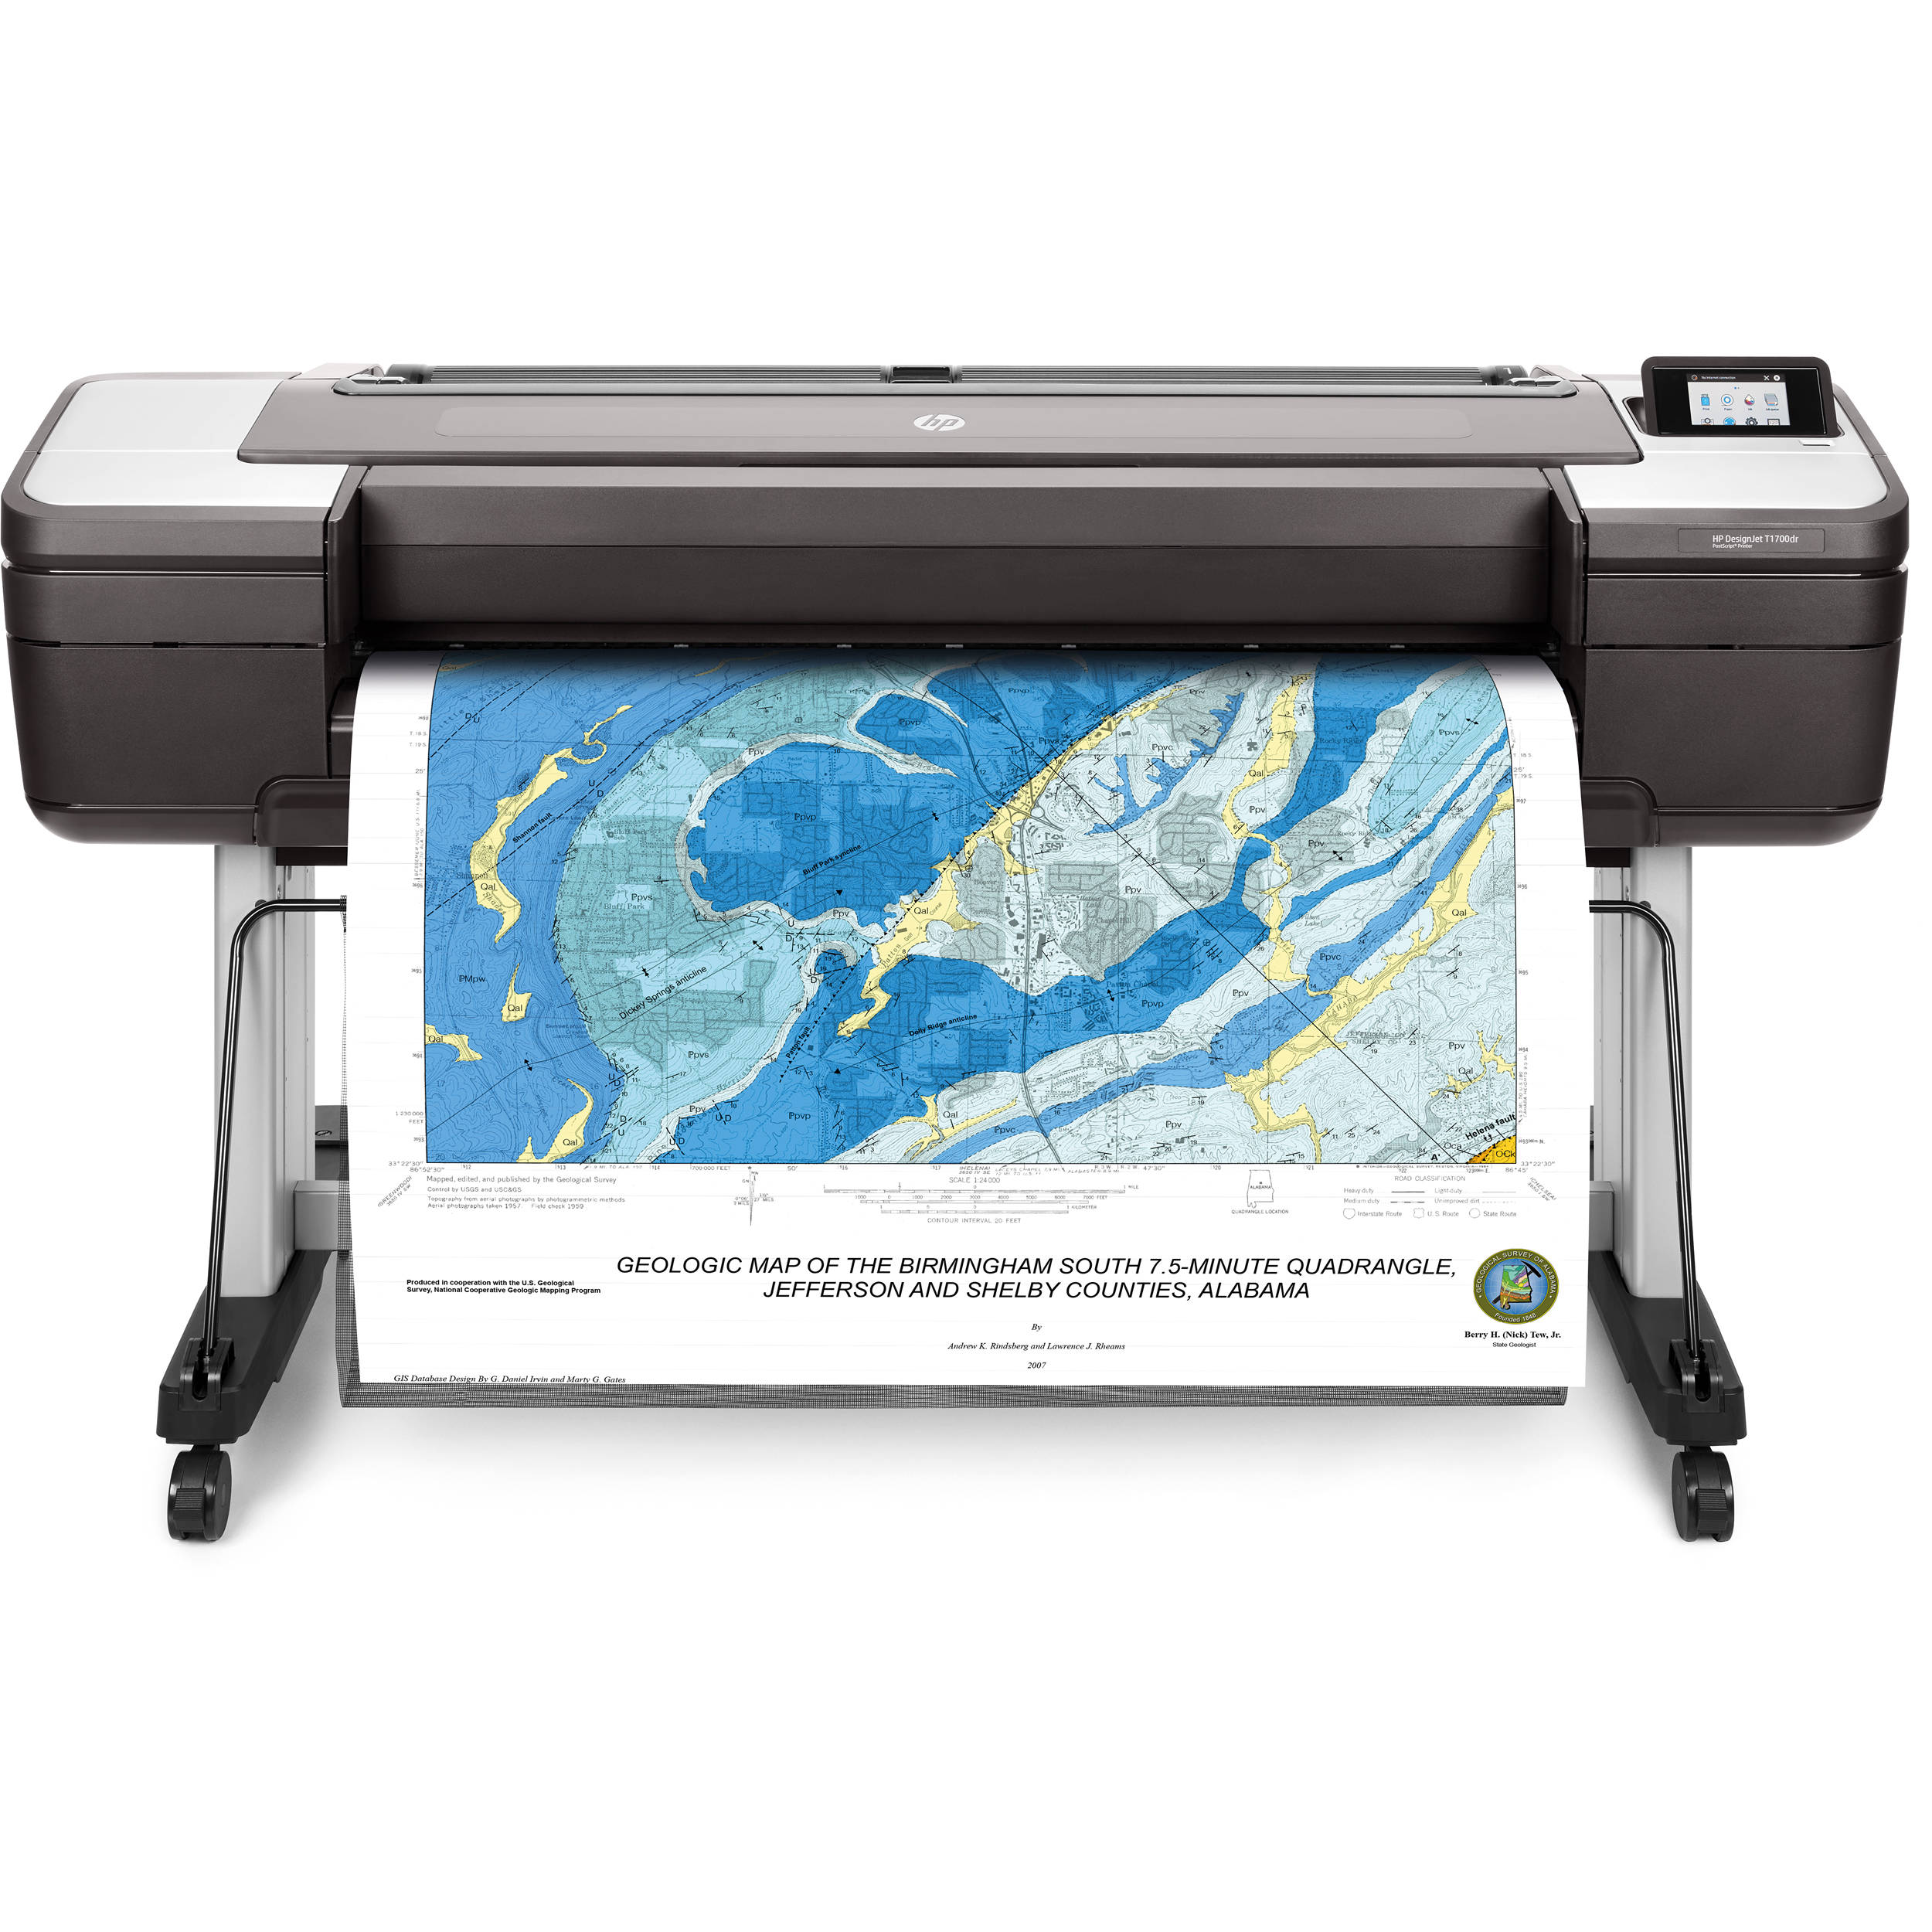 HP Designjet 2000 Printer Drivers for Windows